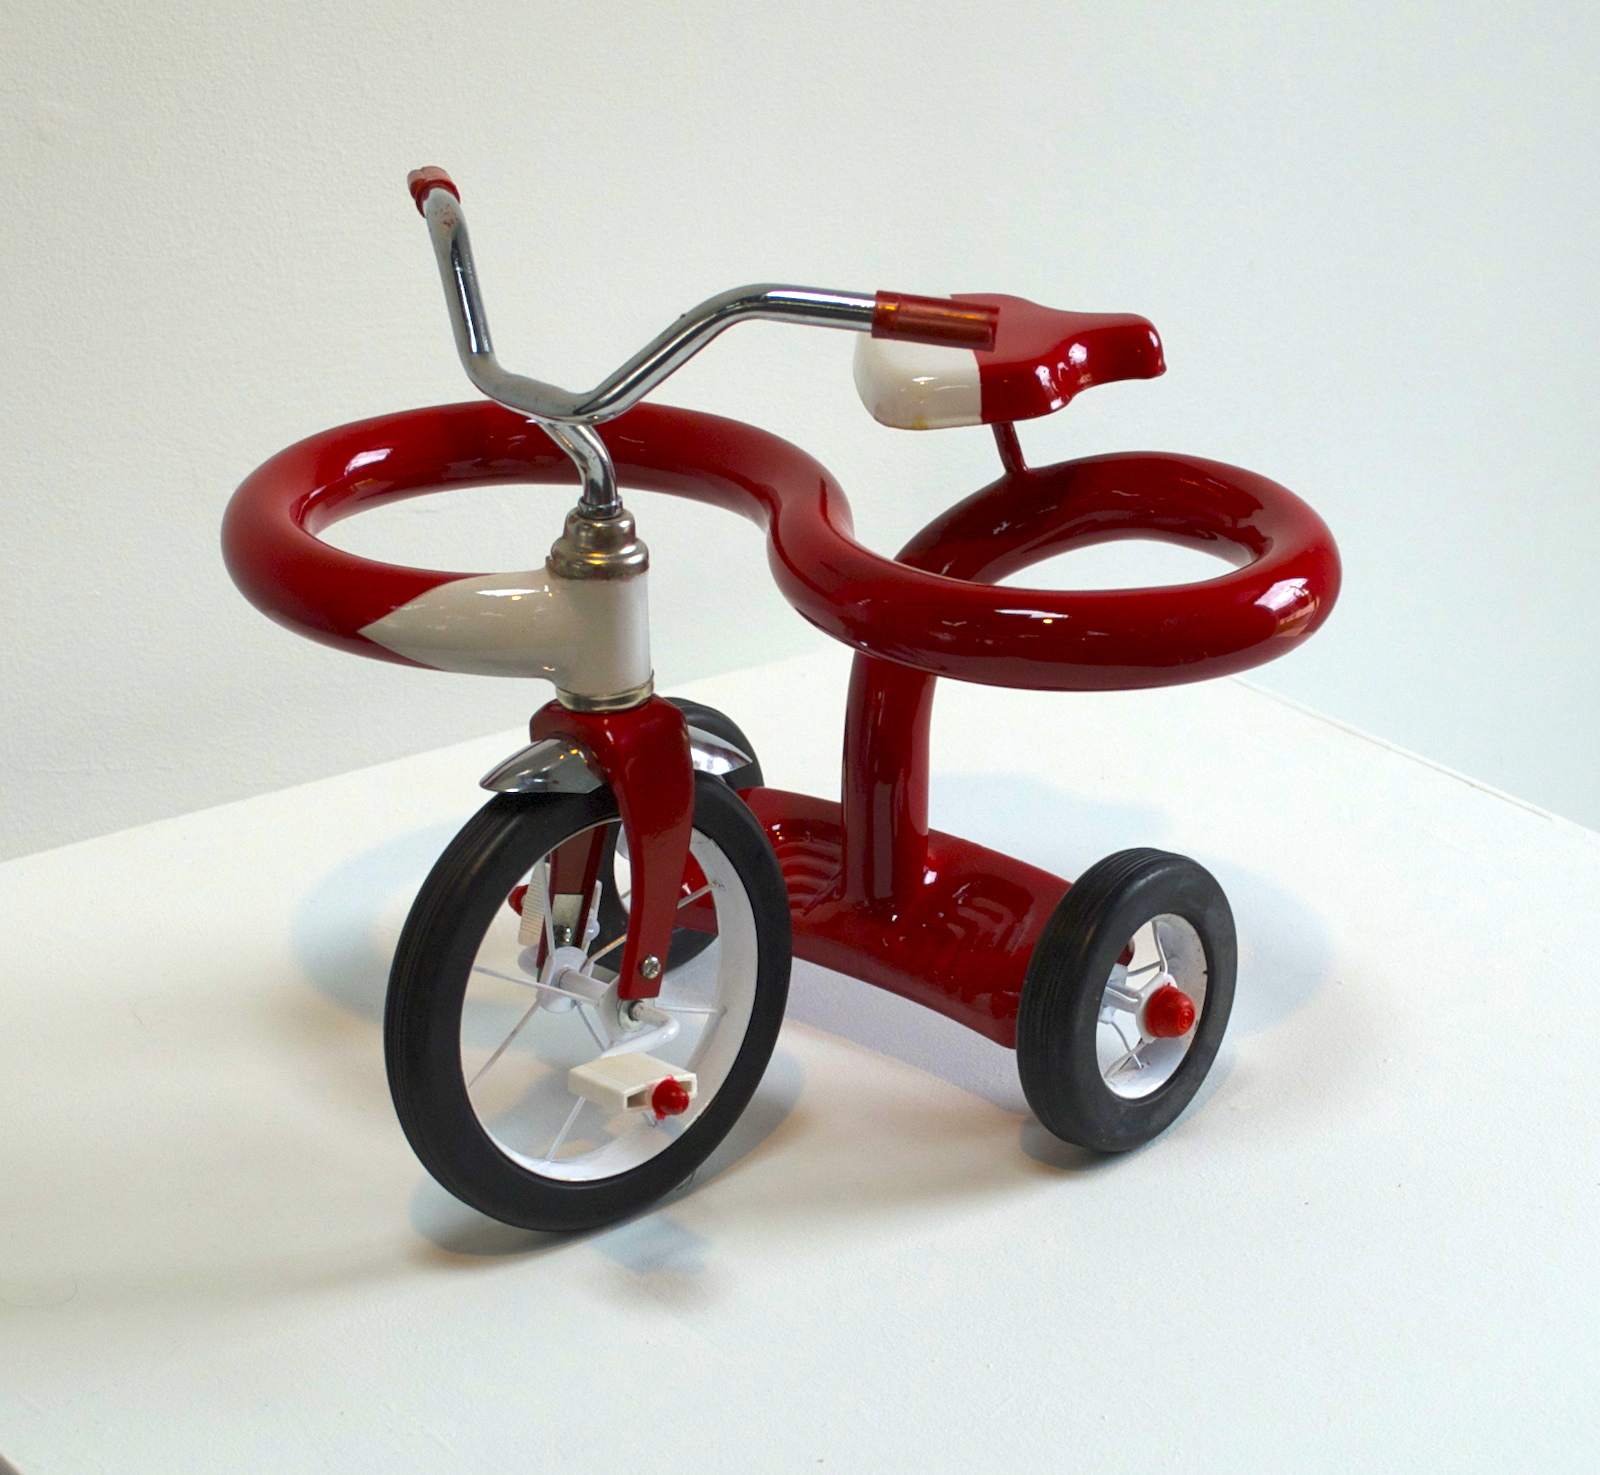 We all get a little sidetracked (mini trike) 2014, Mini-tricycle, metal, plastic, automotive paint, 11